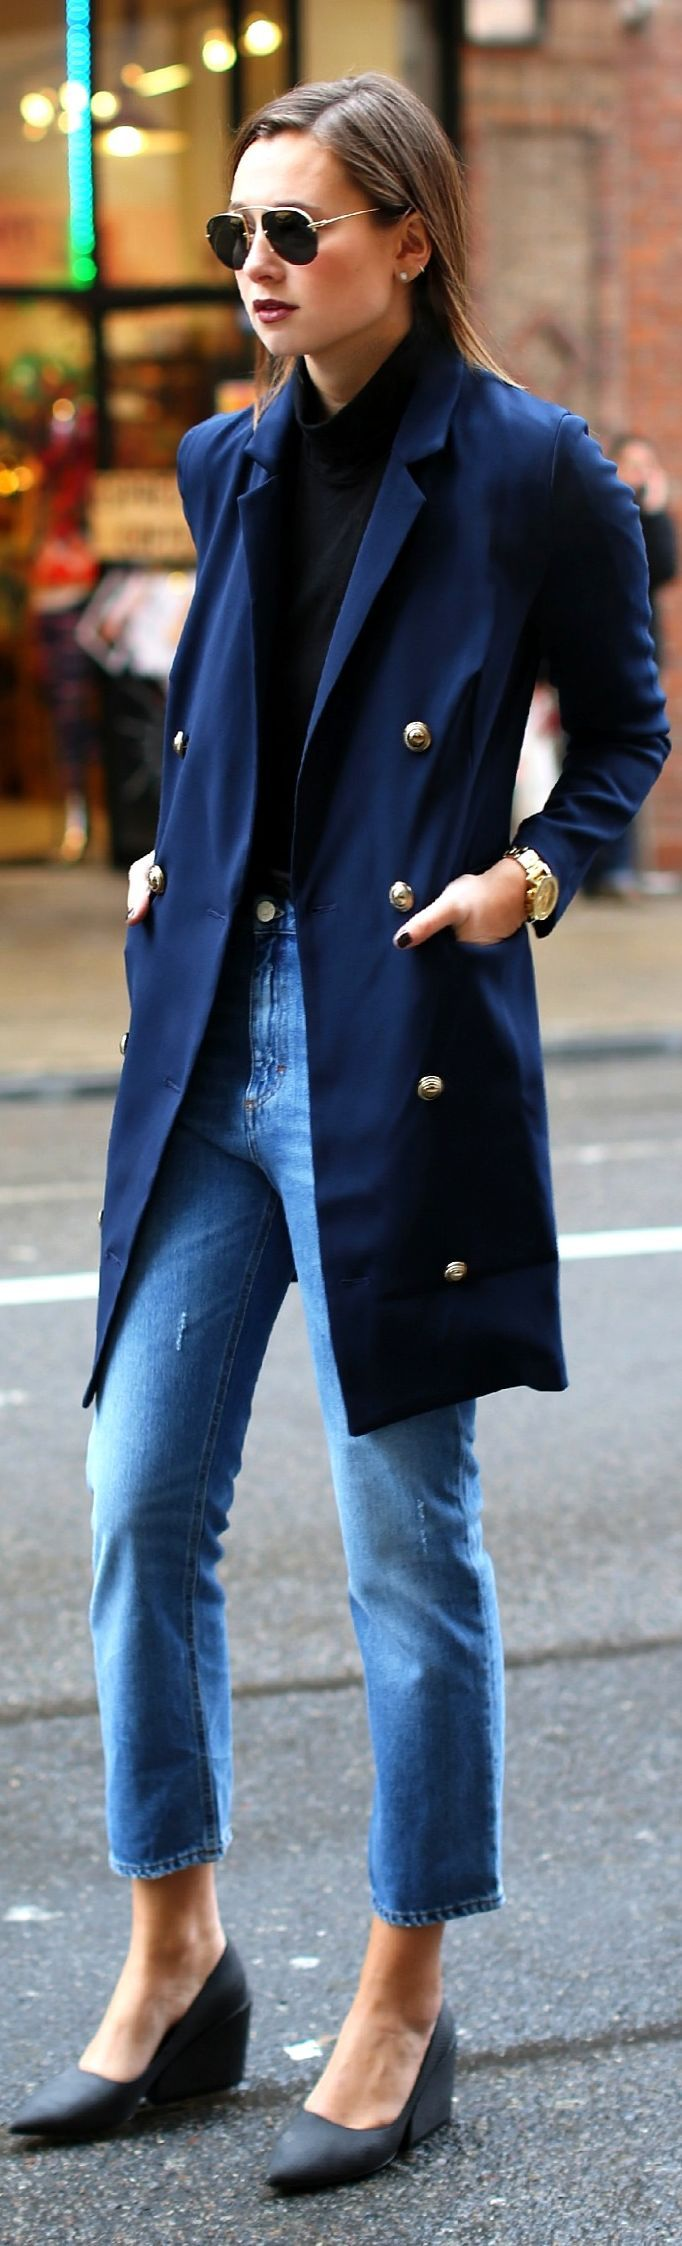 best fashion SS images on Pinterest My style Autumn and Woman